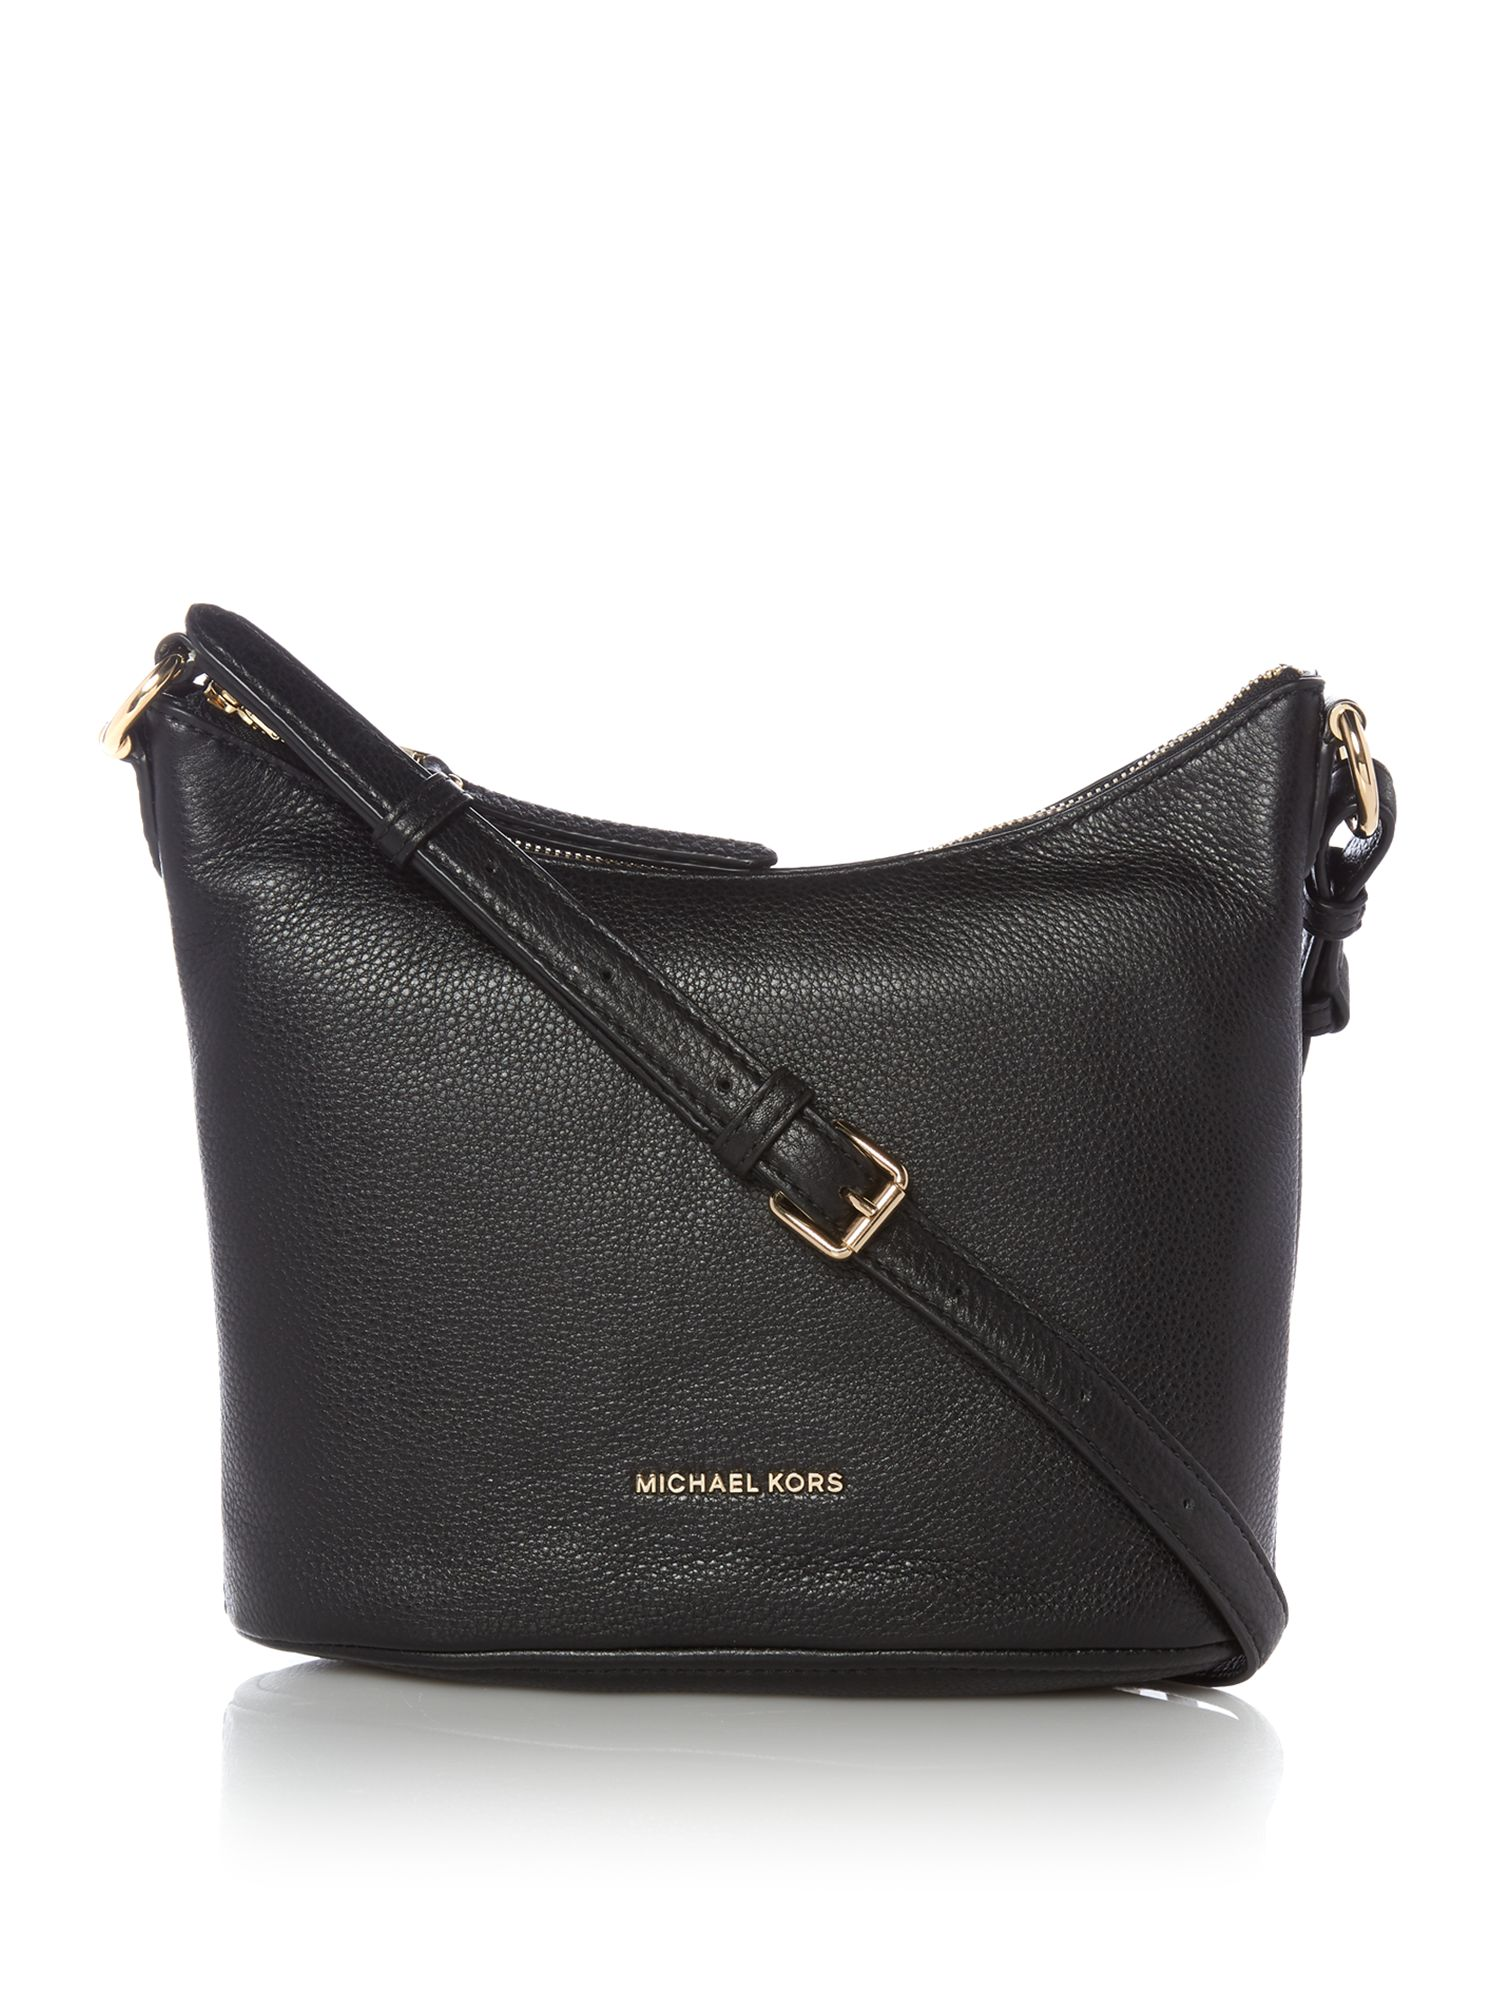 Black hobo bag shop for cheap bags and save online for Housse of fraser